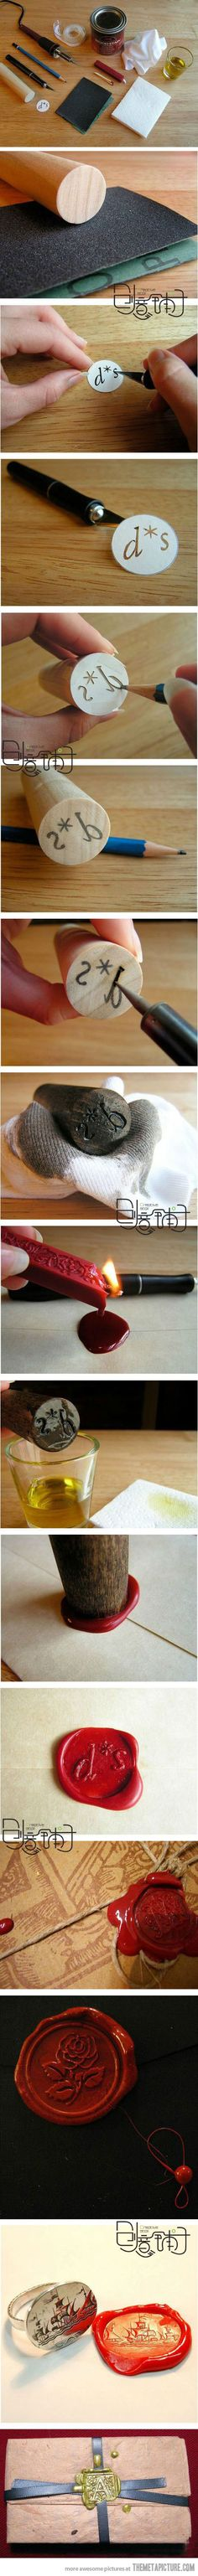 DIY wax stamp